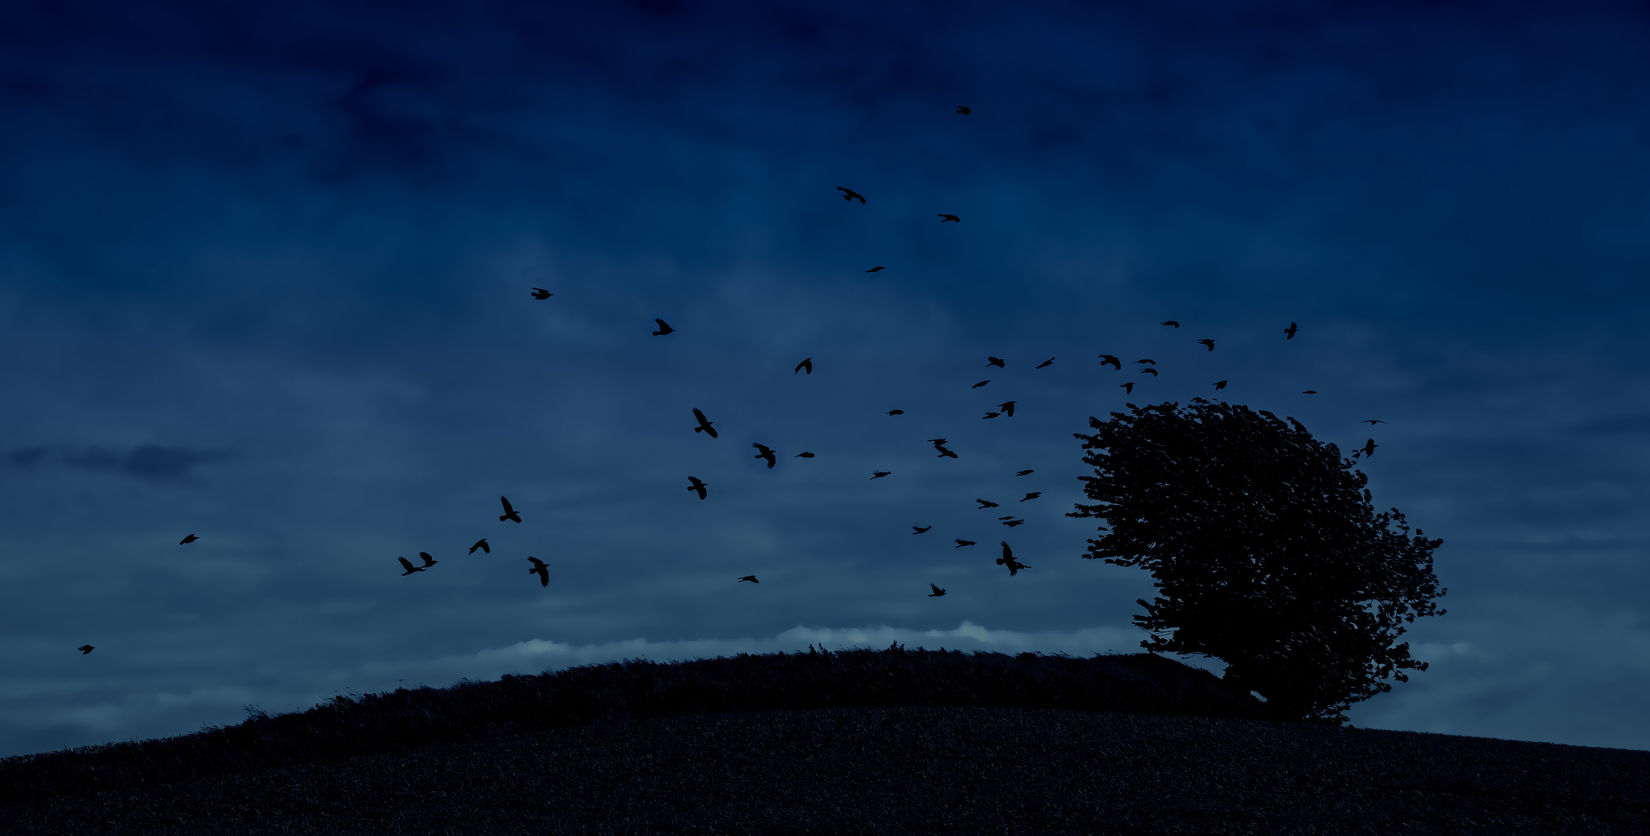 Atmosphere Atmospheric Mood Bad Sign Crows Flock Flock Of Birds Flock Of Birds Mid-air Night Omen Outdoors Ravens Sign Silhouette Spread Wings Tranquil Scene Tree